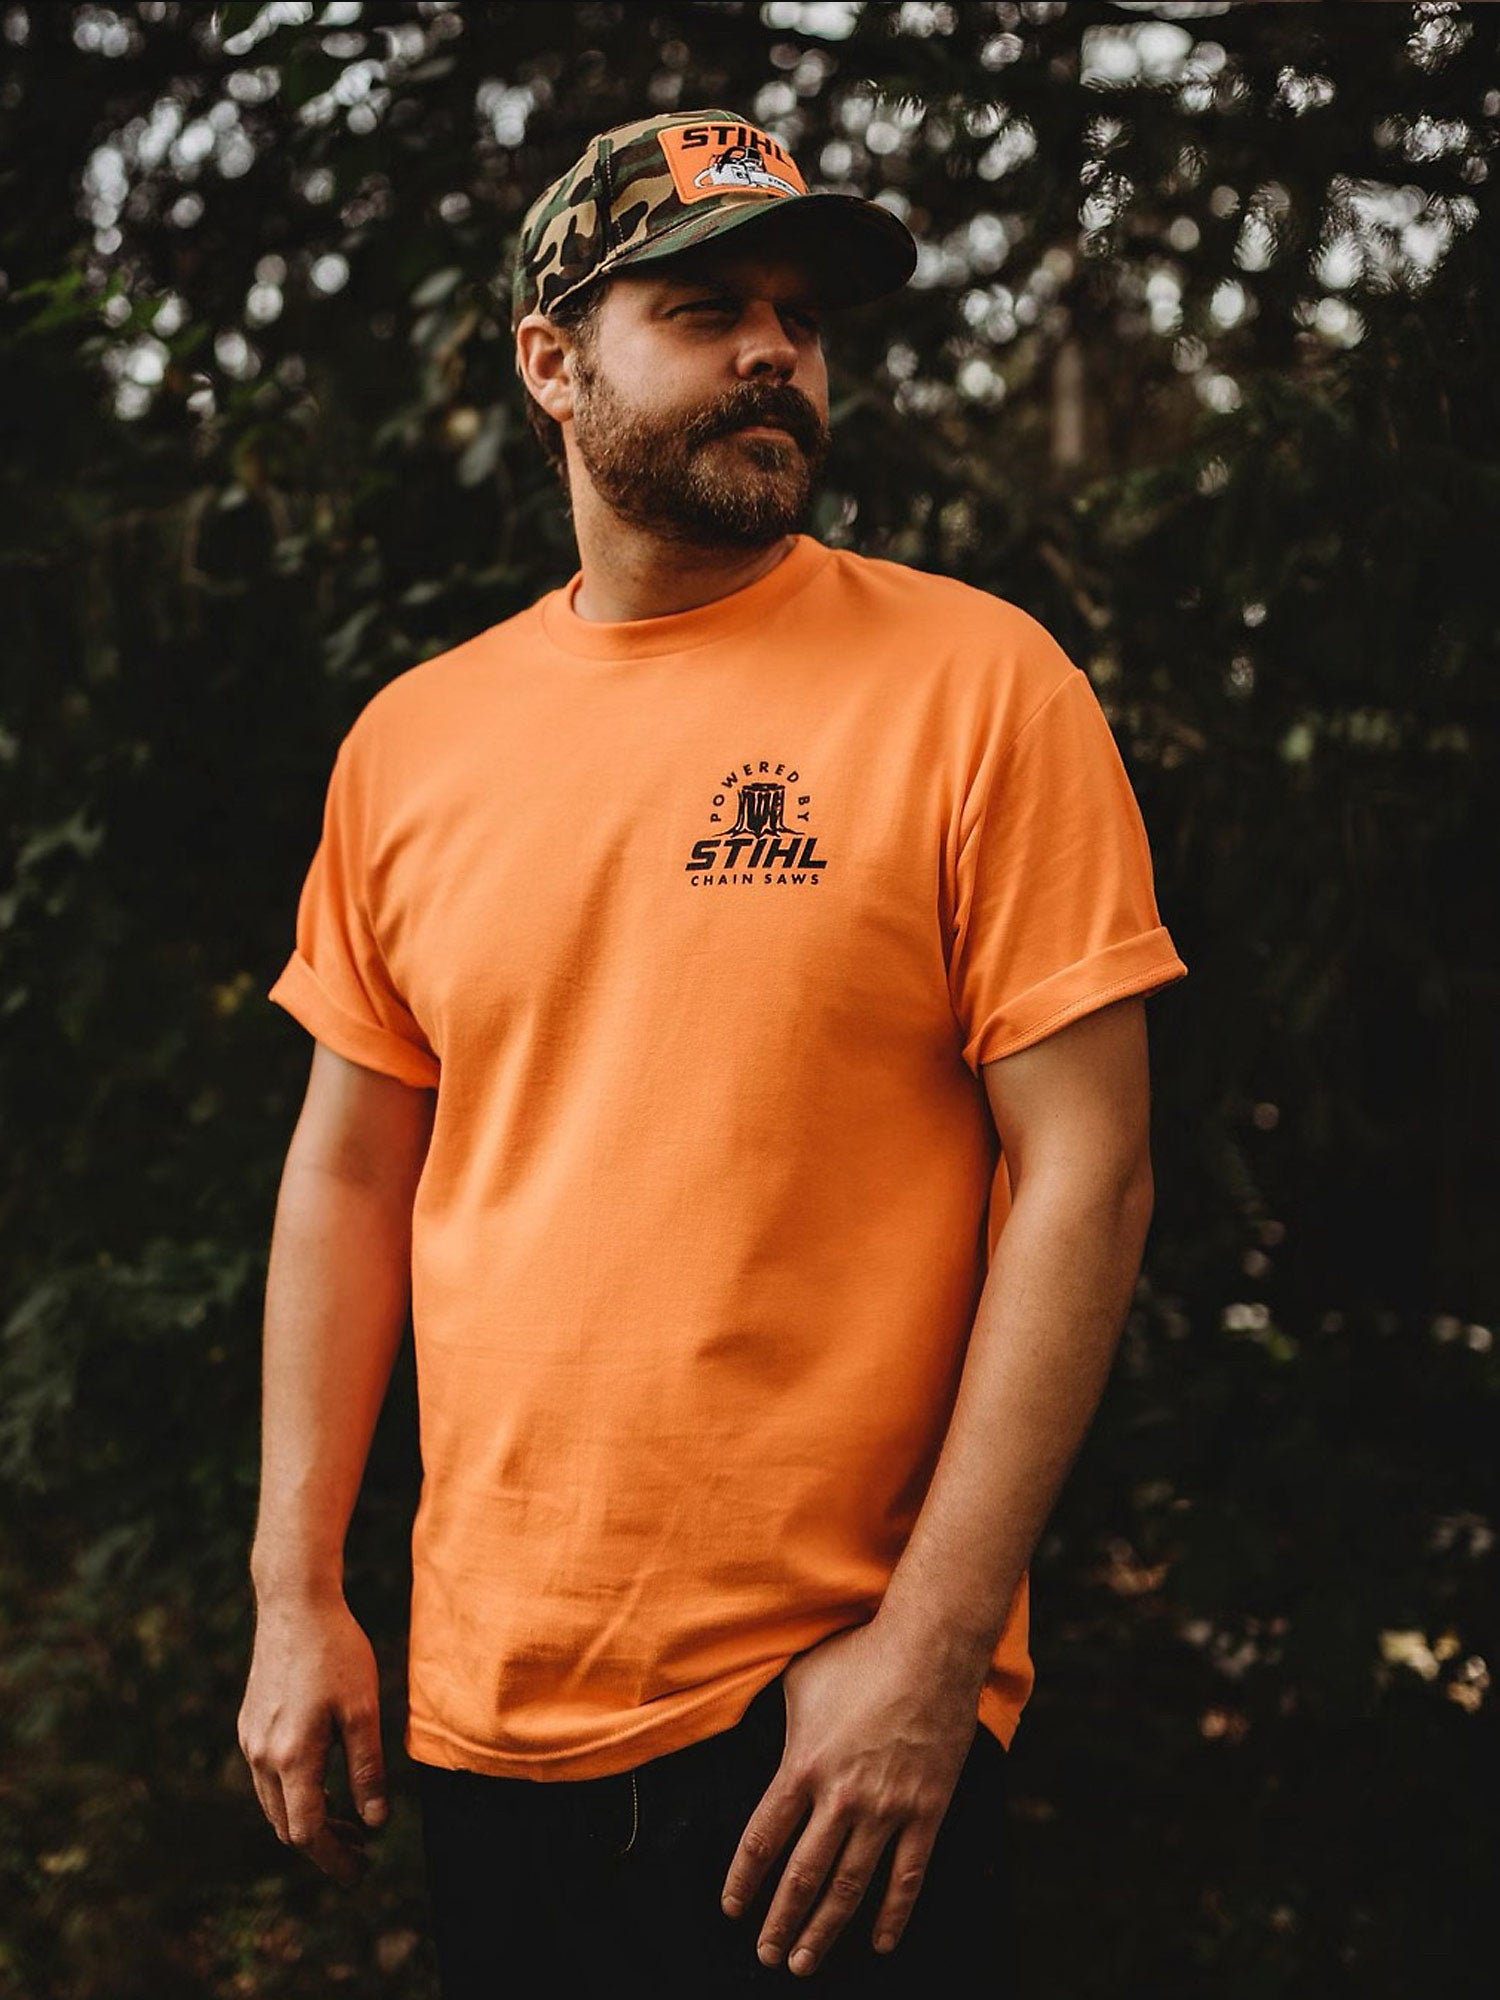 POWERED BY STIHL Shirt - wholesale